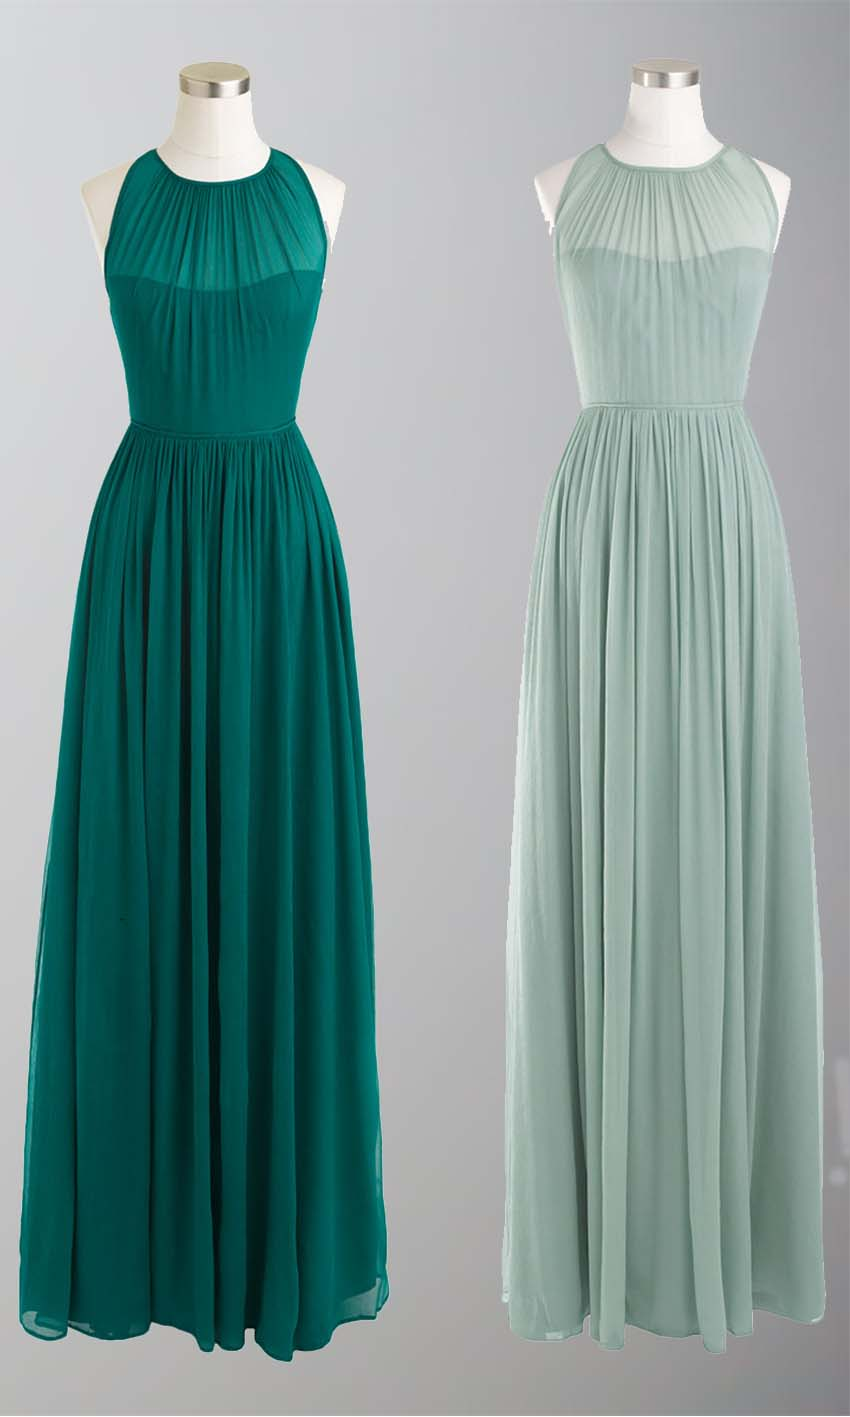 Long Bridesmaid Dresses UK with Illusion Neckline KSP336 [KSP336] - £92.00 : Cheap Prom Dresses Uk, Bridesmaid Dresses, 2014 Prom & Evening Dresses, Look for cheap elegant prom dresses 2014, cocktail gowns, or dresses for special occasions? kissprom.co.uk offers various bridesmaid dresses, evening dress, free shipping to UK etc.